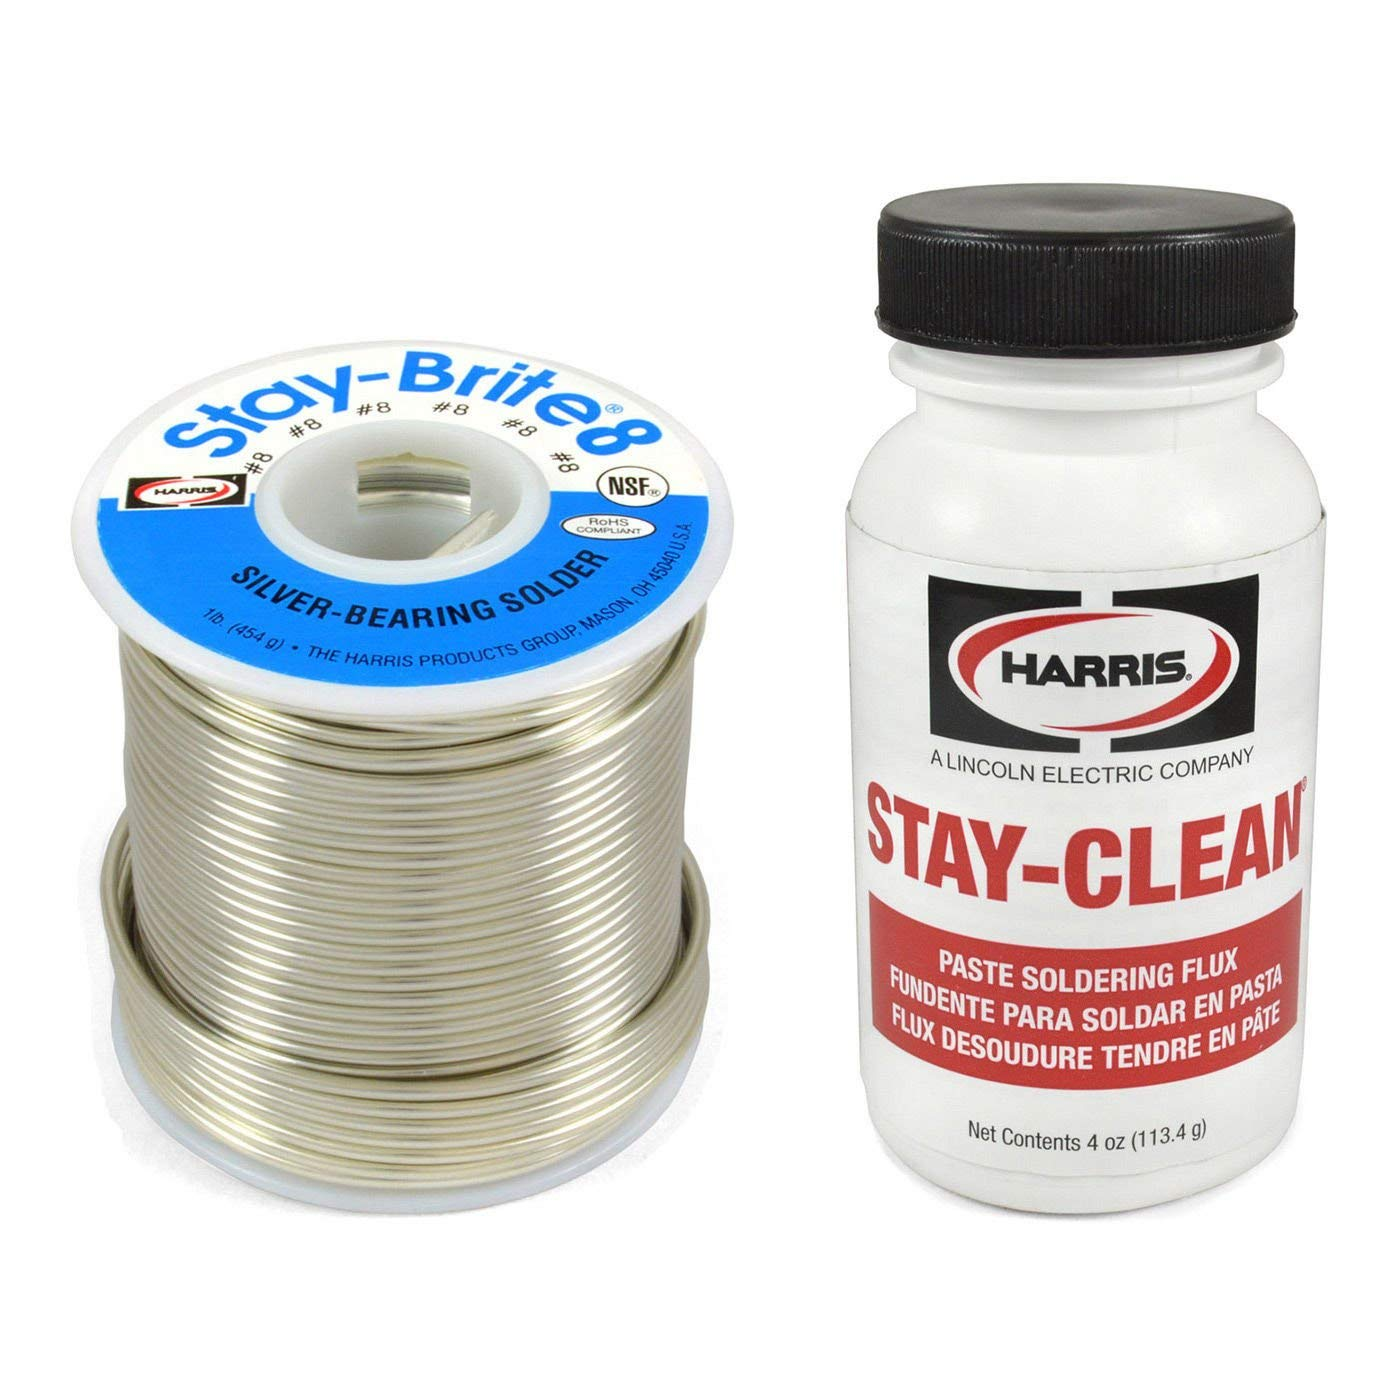 Harris Solder Kit SCPF4 & SB831 - Stay-Brite #8 Silver solder and Flux